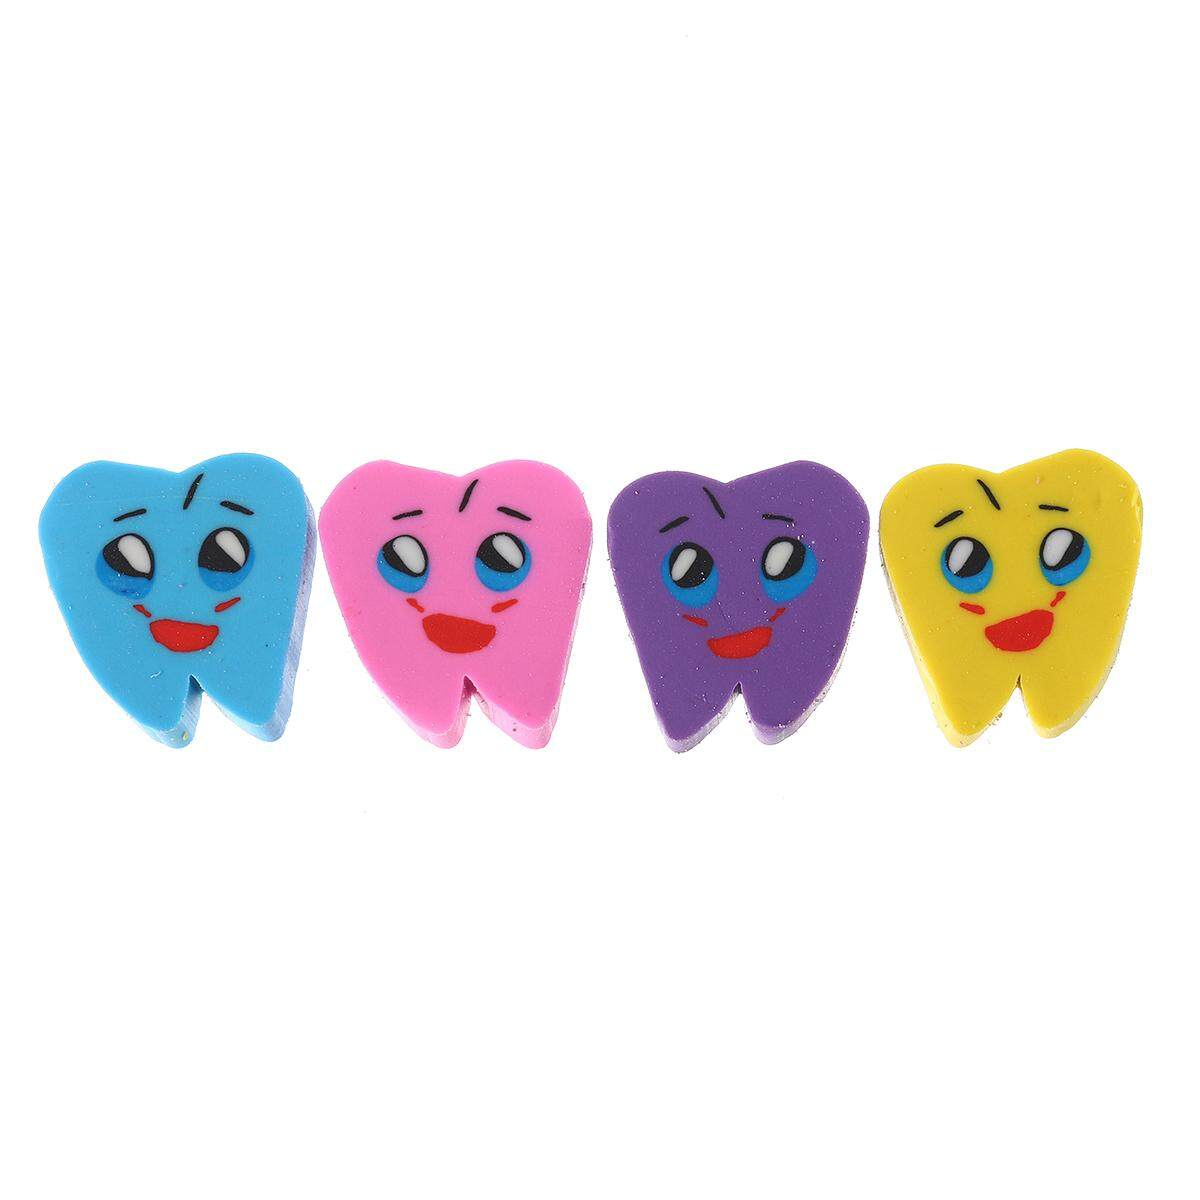 Wholesale Dental Clinic Promotional Gifts Oral Rubber Lovely Tooth Eraser Package 50 By Moonbeam.